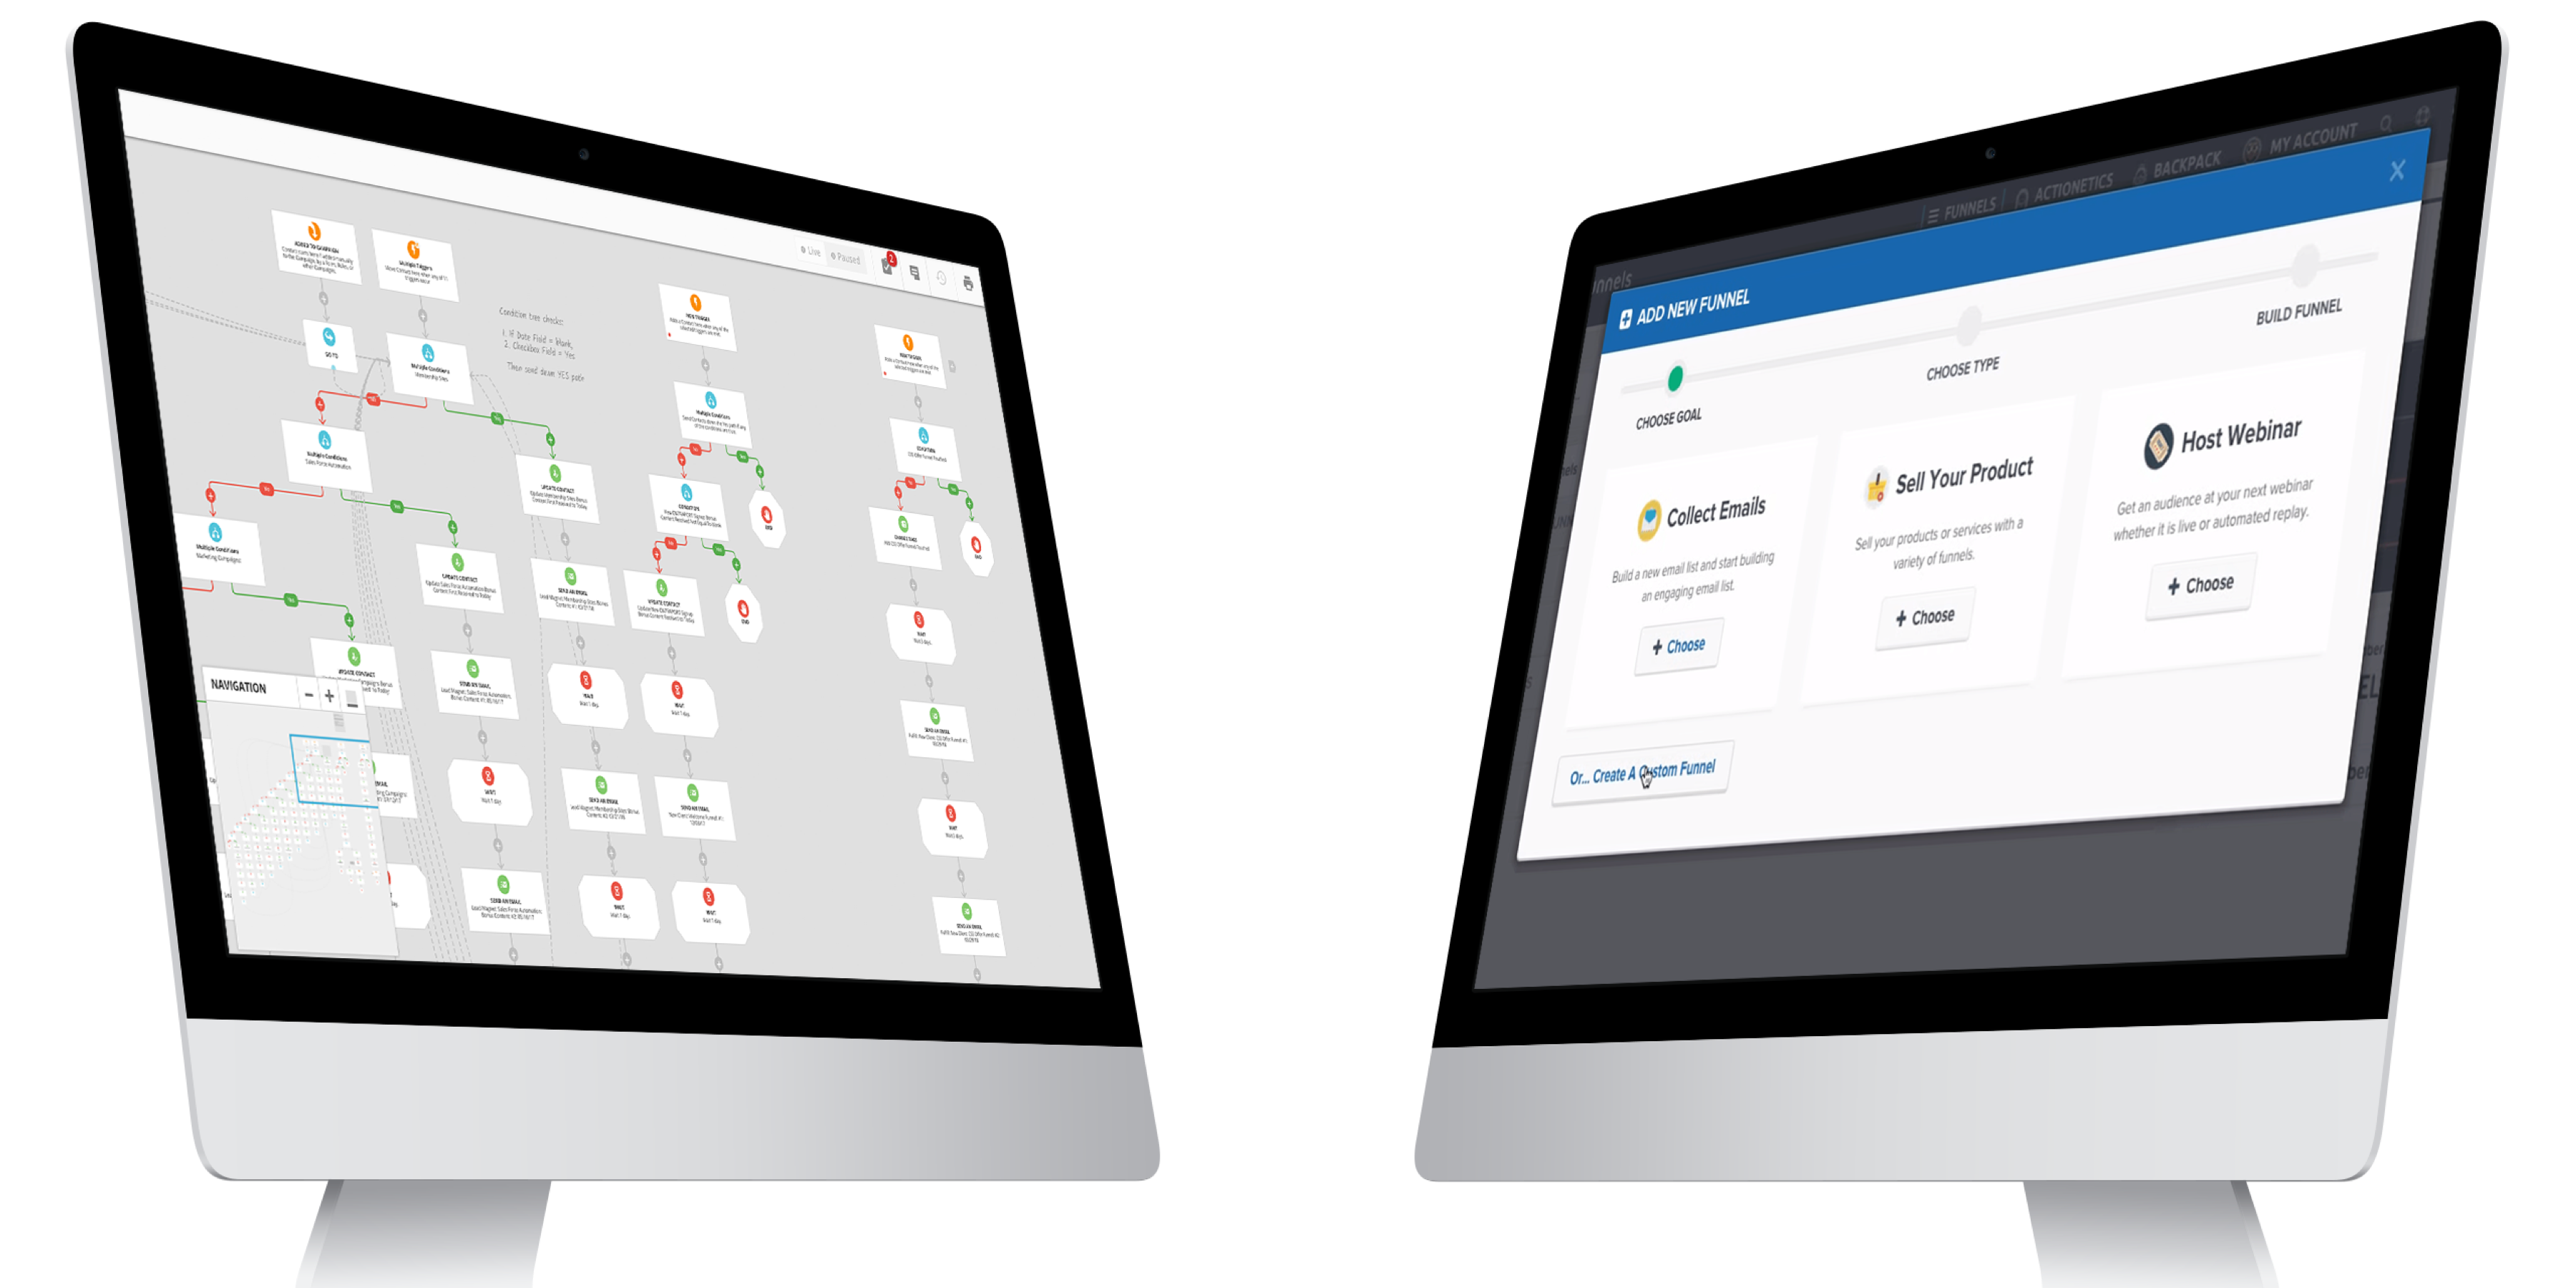 Two desktop computers displaying the Ontraport app on the left and the ClickFunnels app on the right